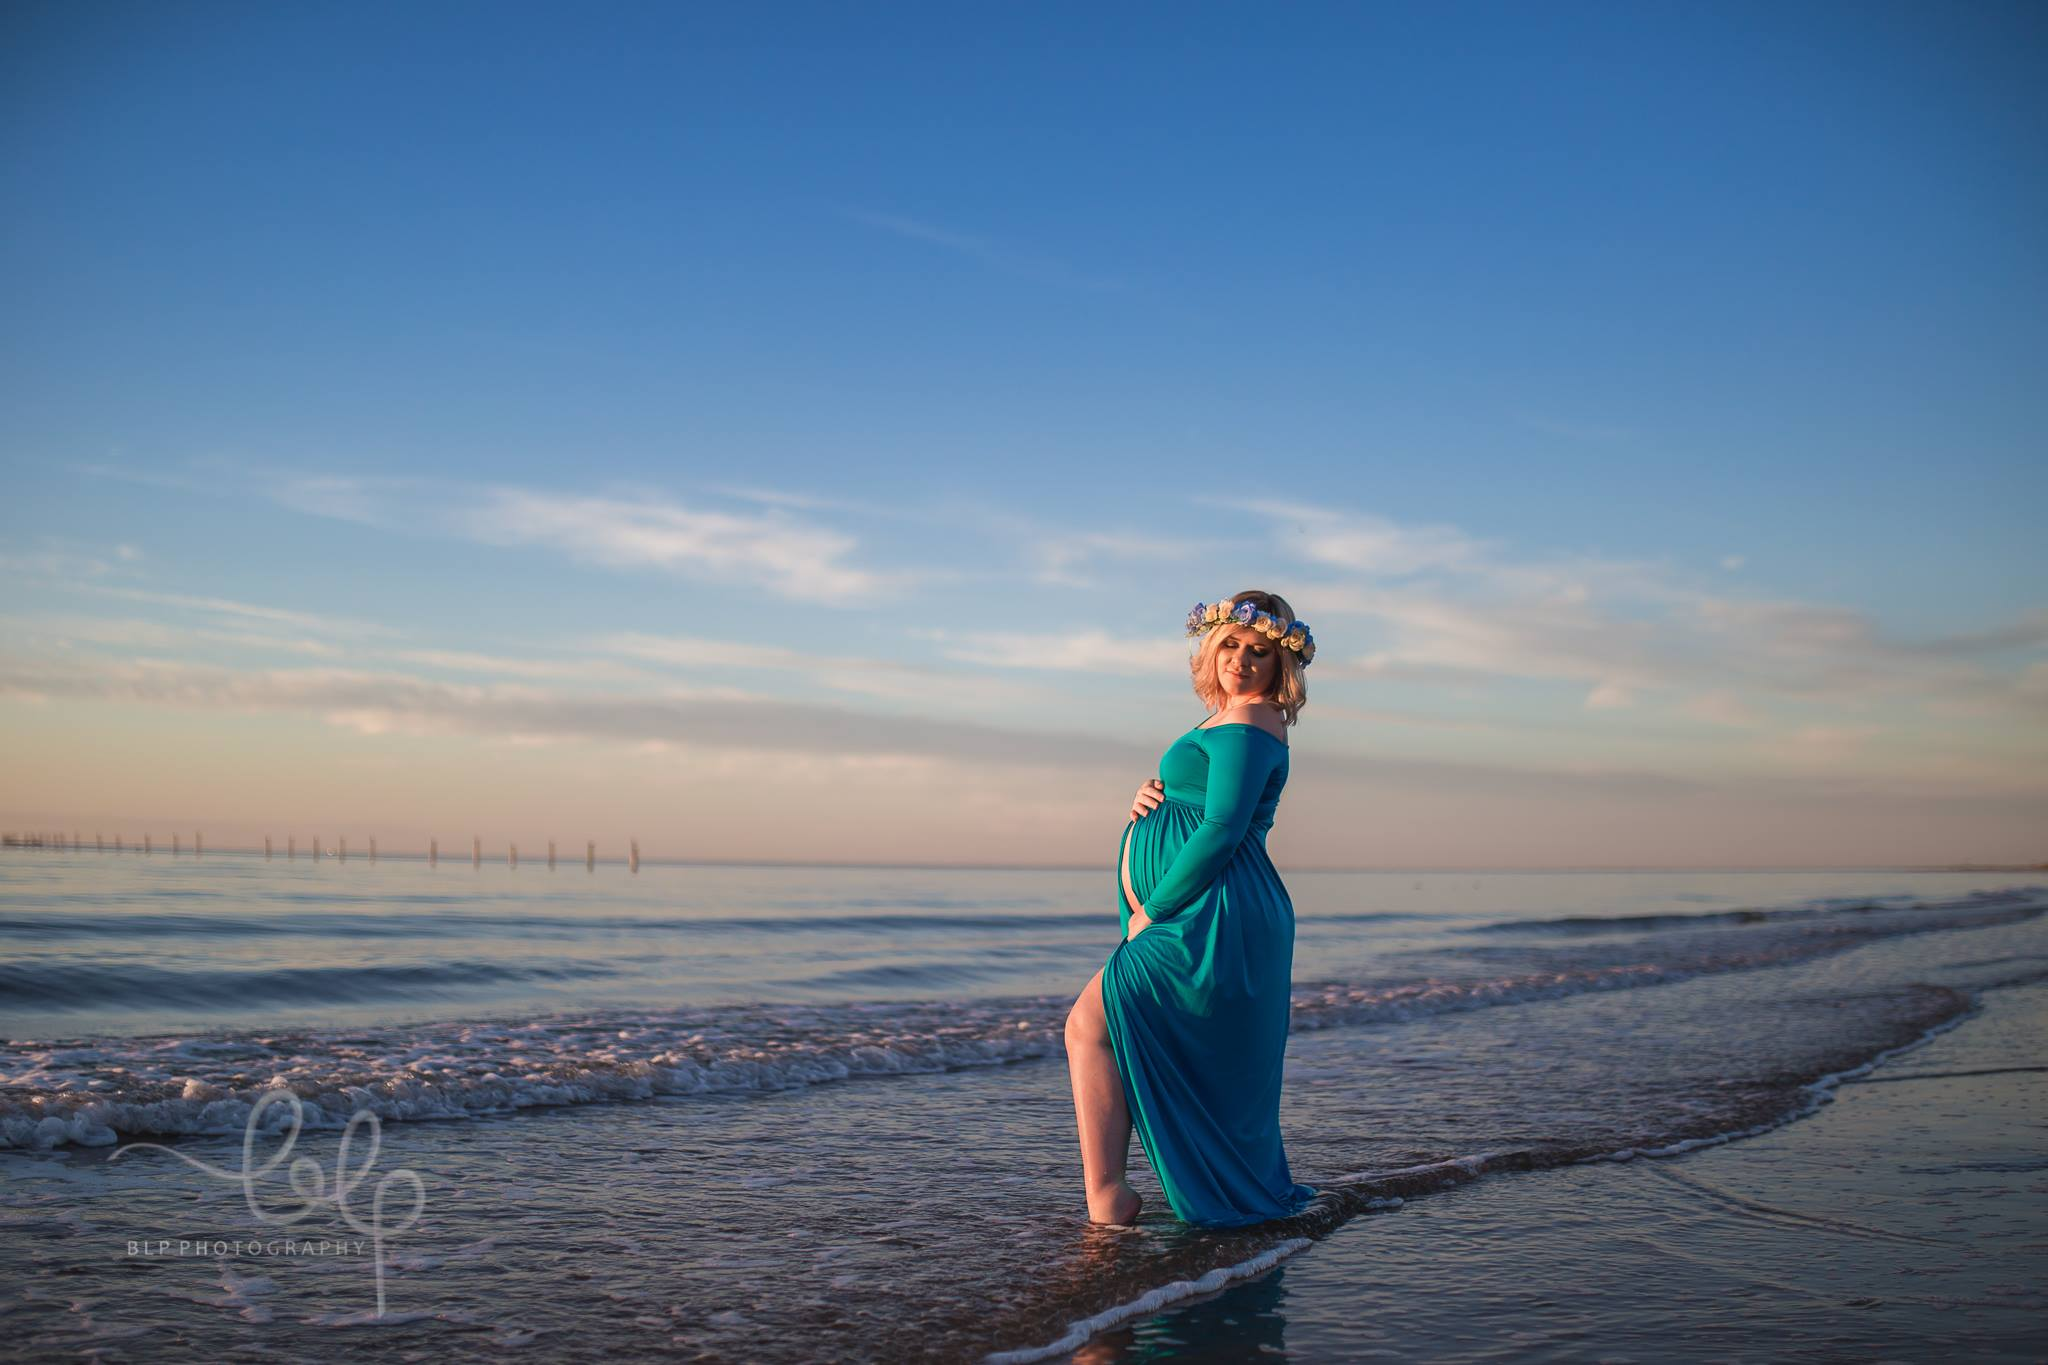 Julianna Maternity dress-off the shoulder-open on the front-maternity photoshoot